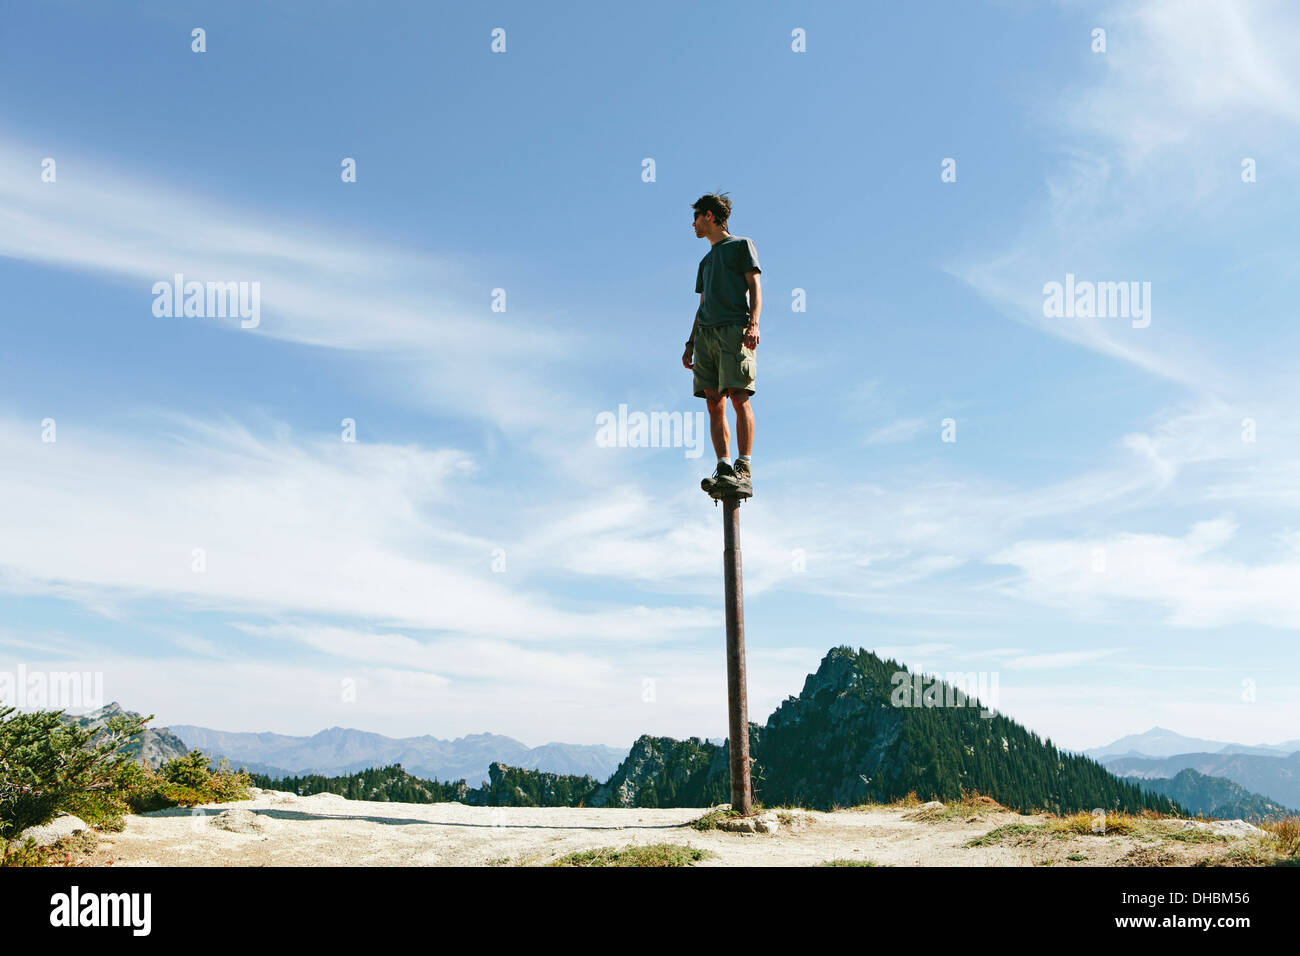 A man standing balancing on metal post looking towards expansive sky on Surprise Mountain Alpine Lakes Wilderness Mt - Stock Image